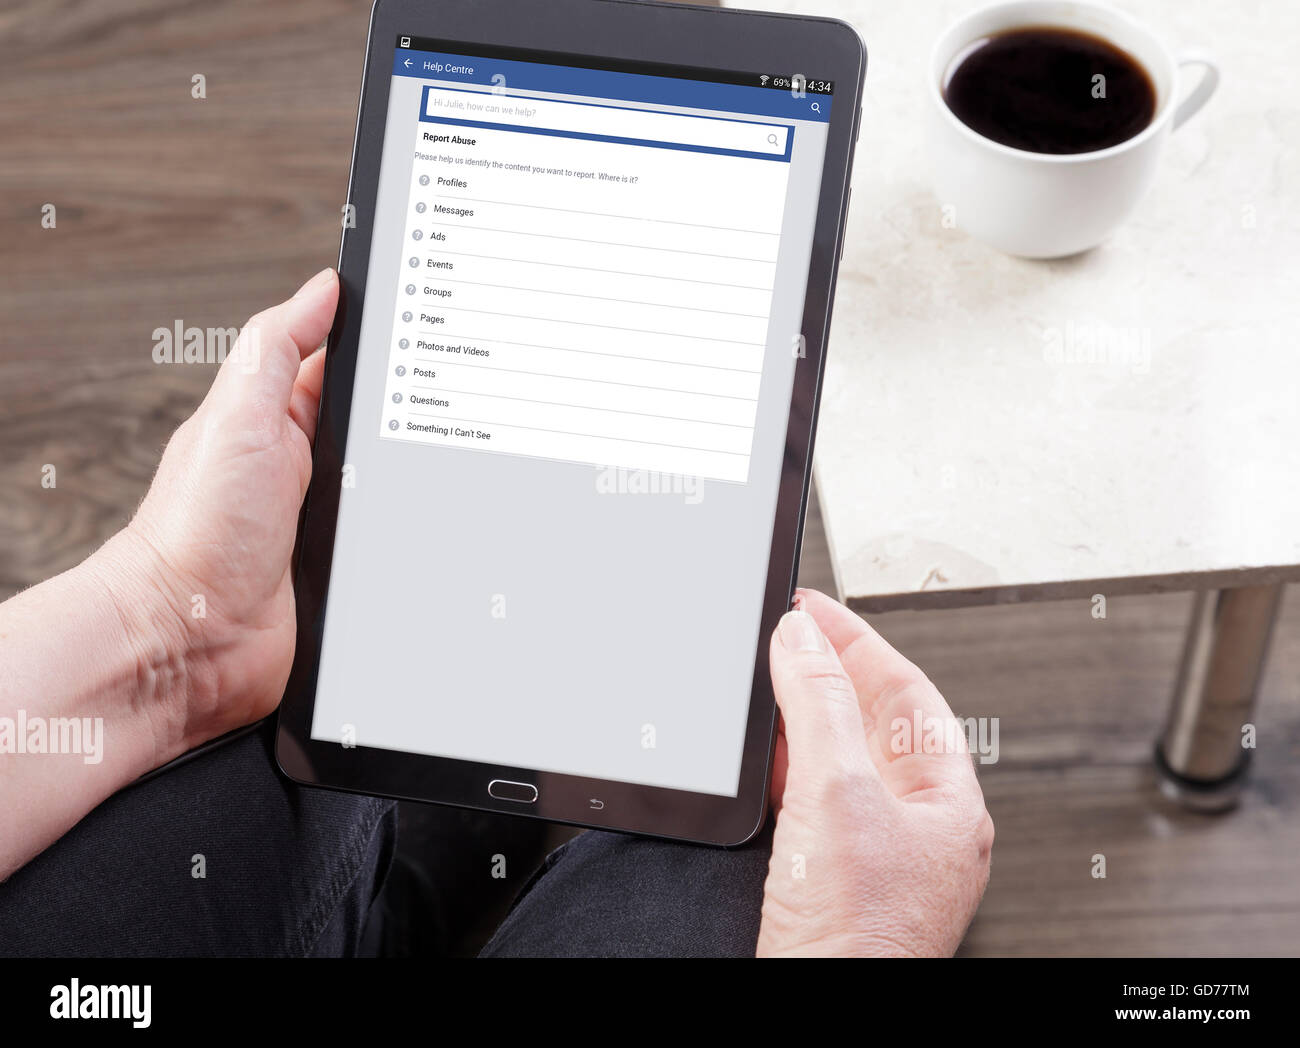 viewing Facebook report abuse page tablet Stock Photo